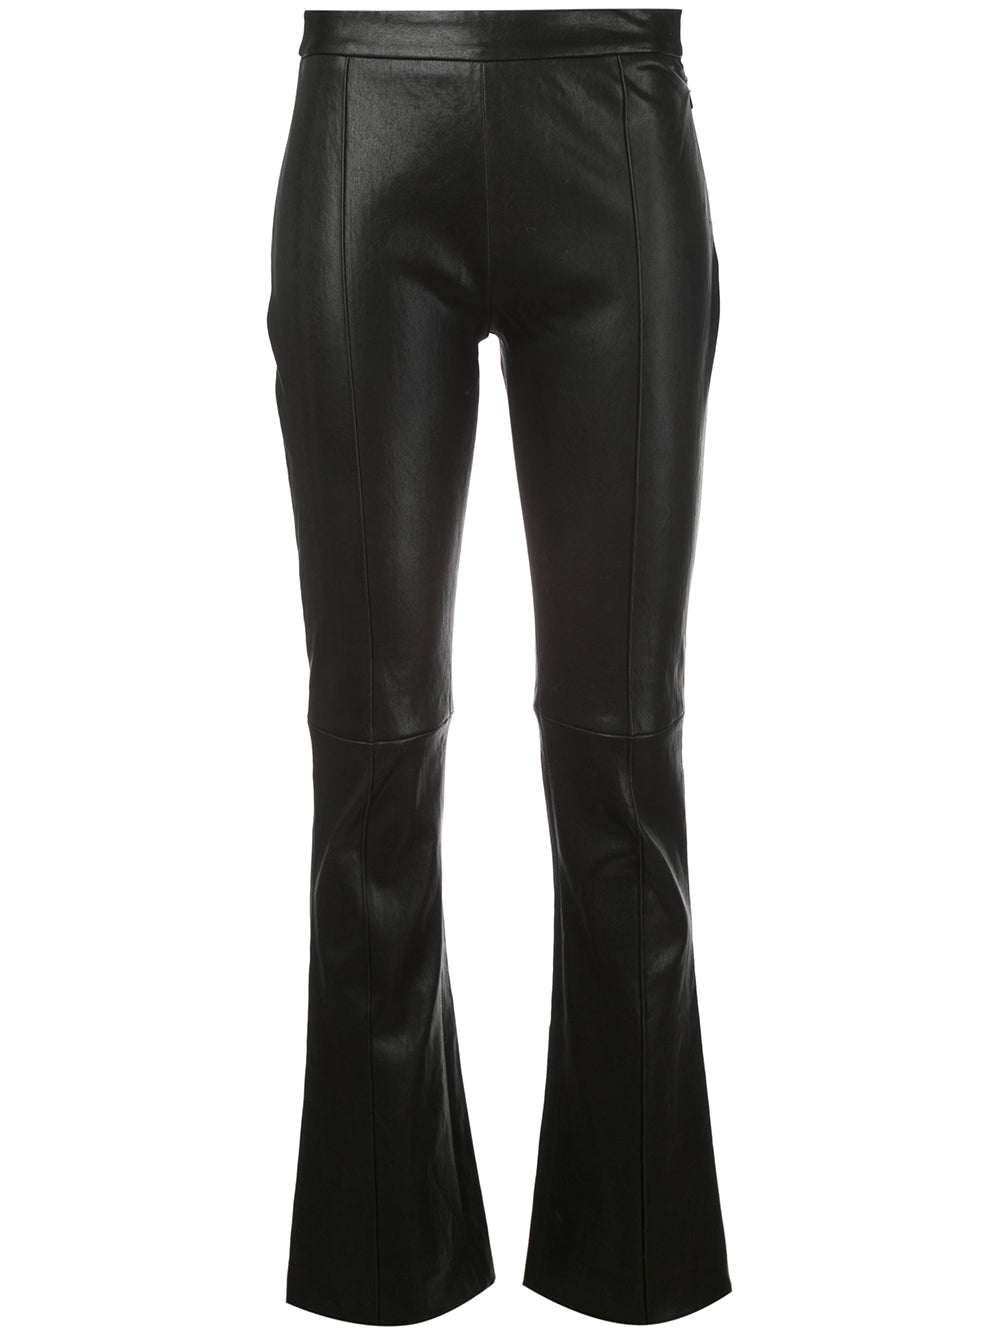 CROPPED KICK FLARE PANT IN STRETCH LEATHER